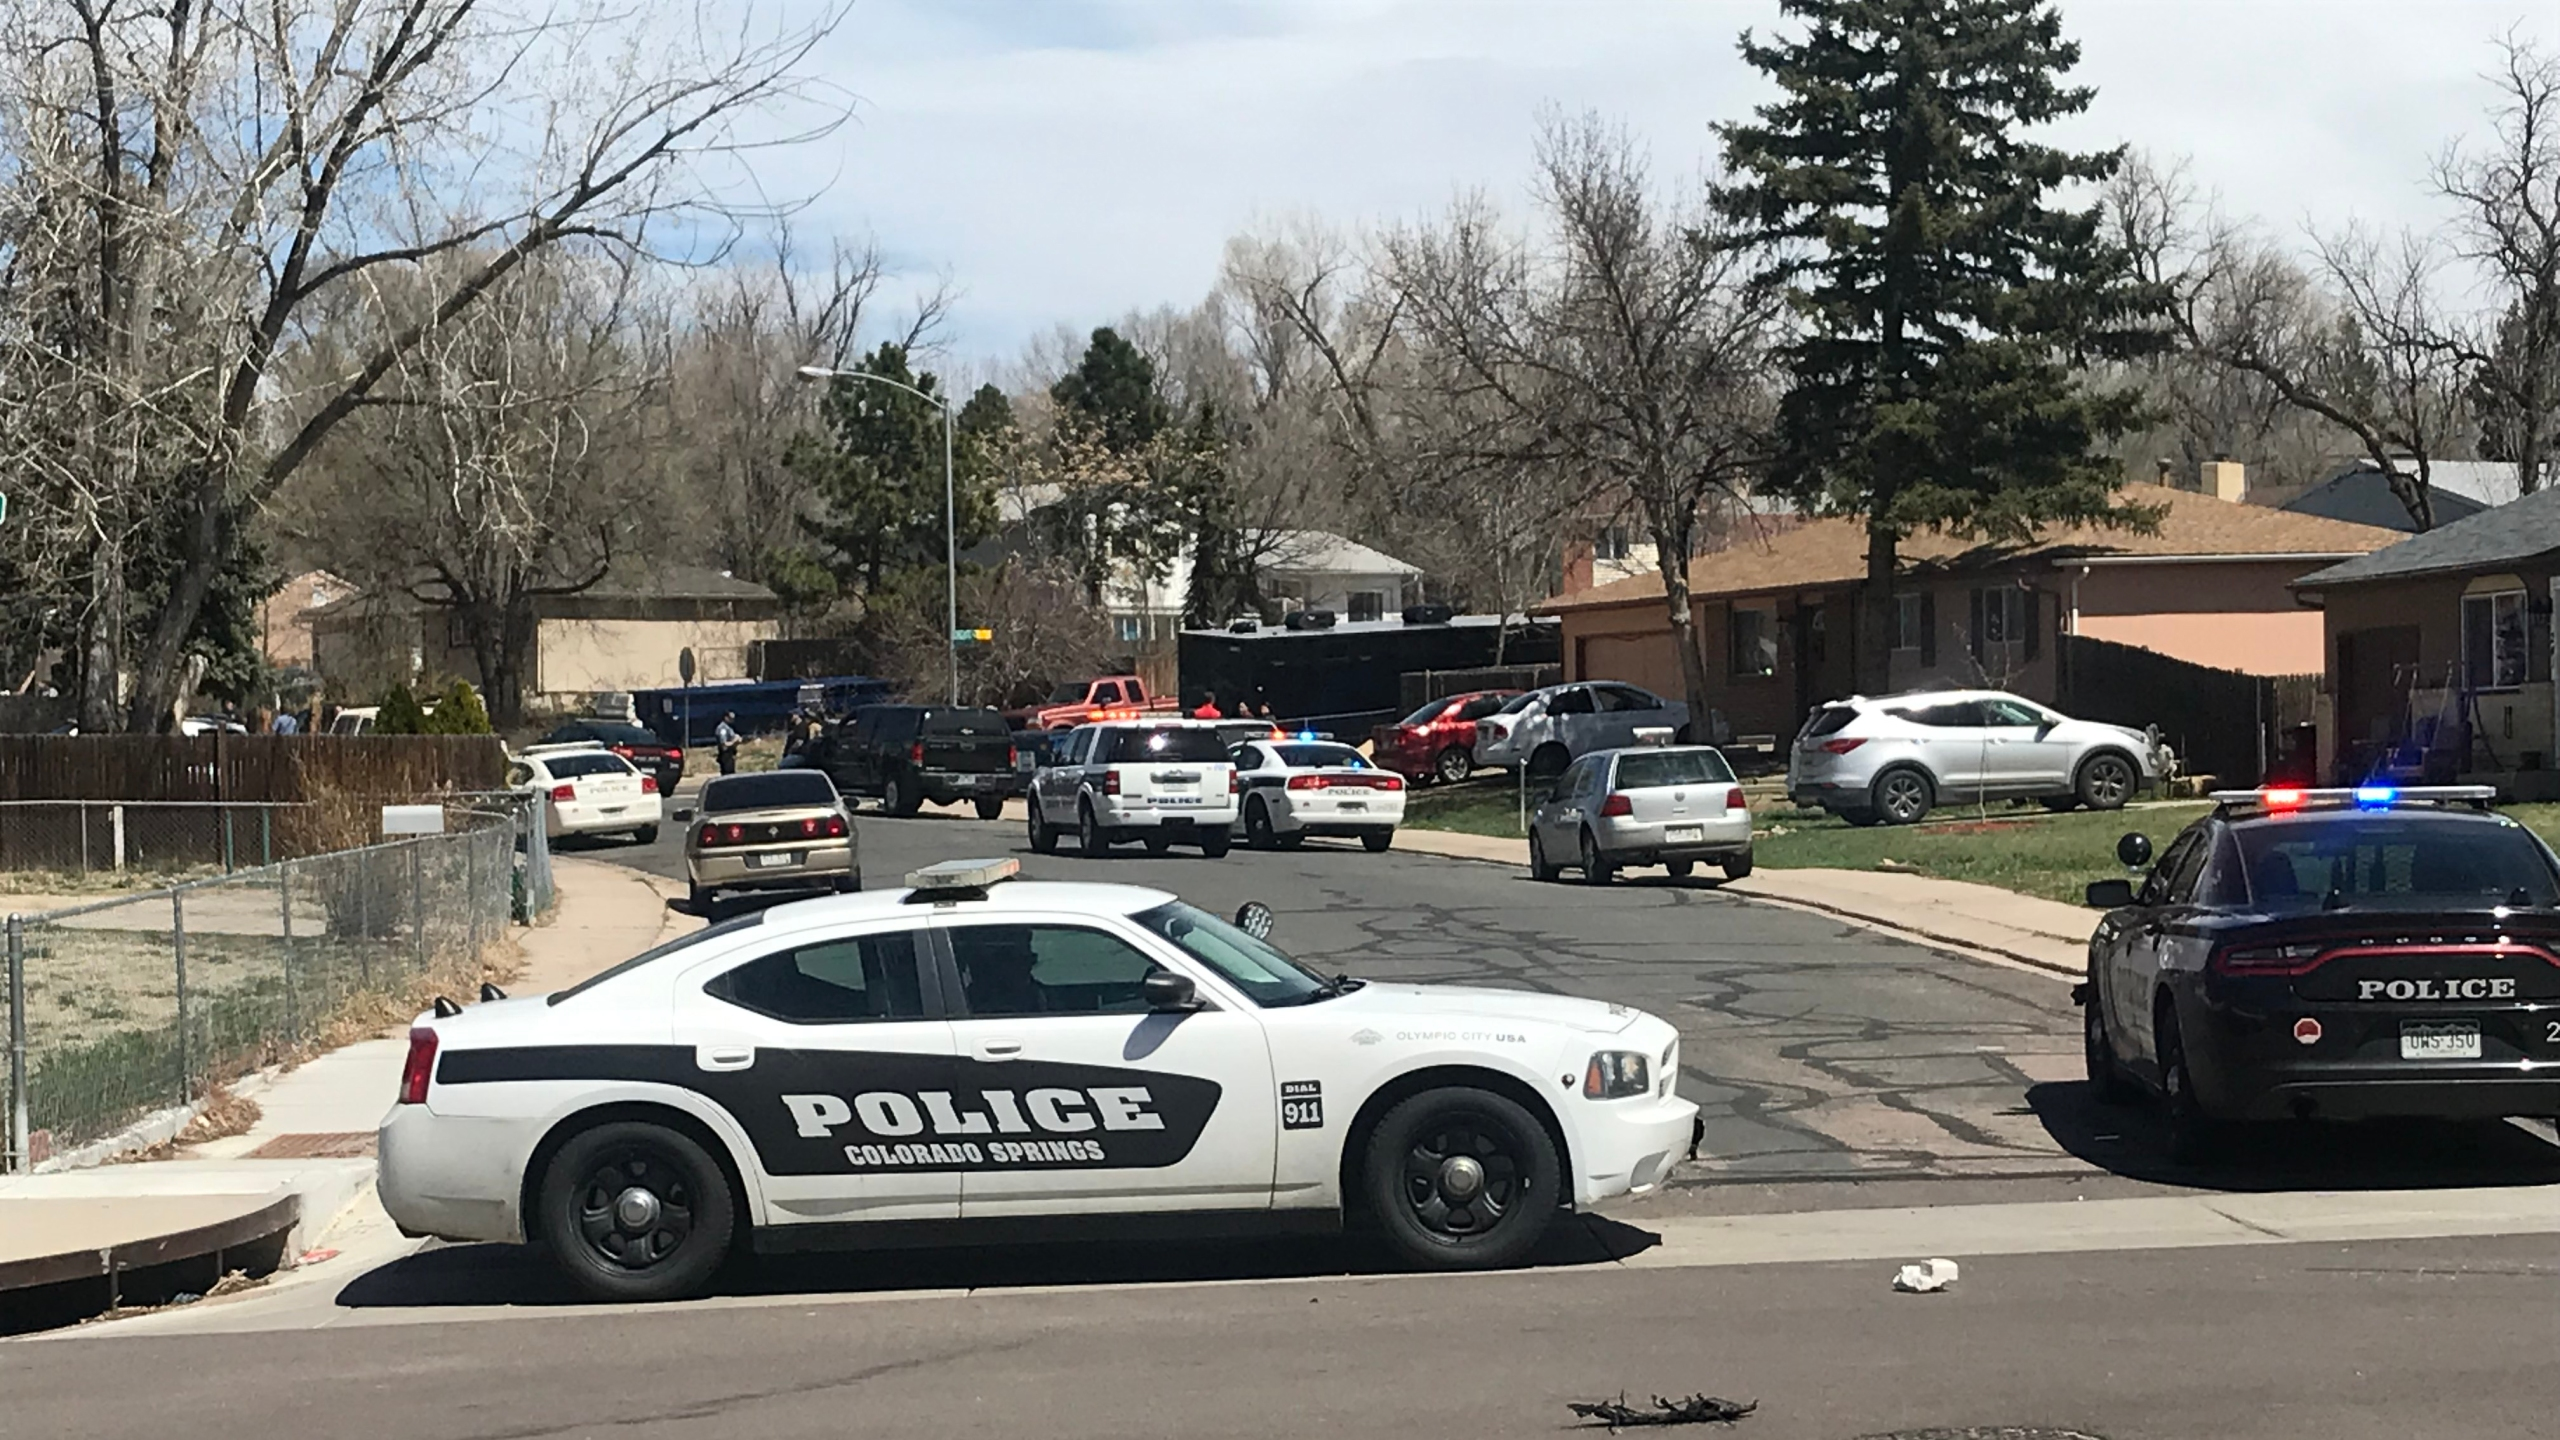 No one was injured when an officer or officers fired shots during an arrest on Longfellow Drive Monday. Mike Duran - FOX21 News